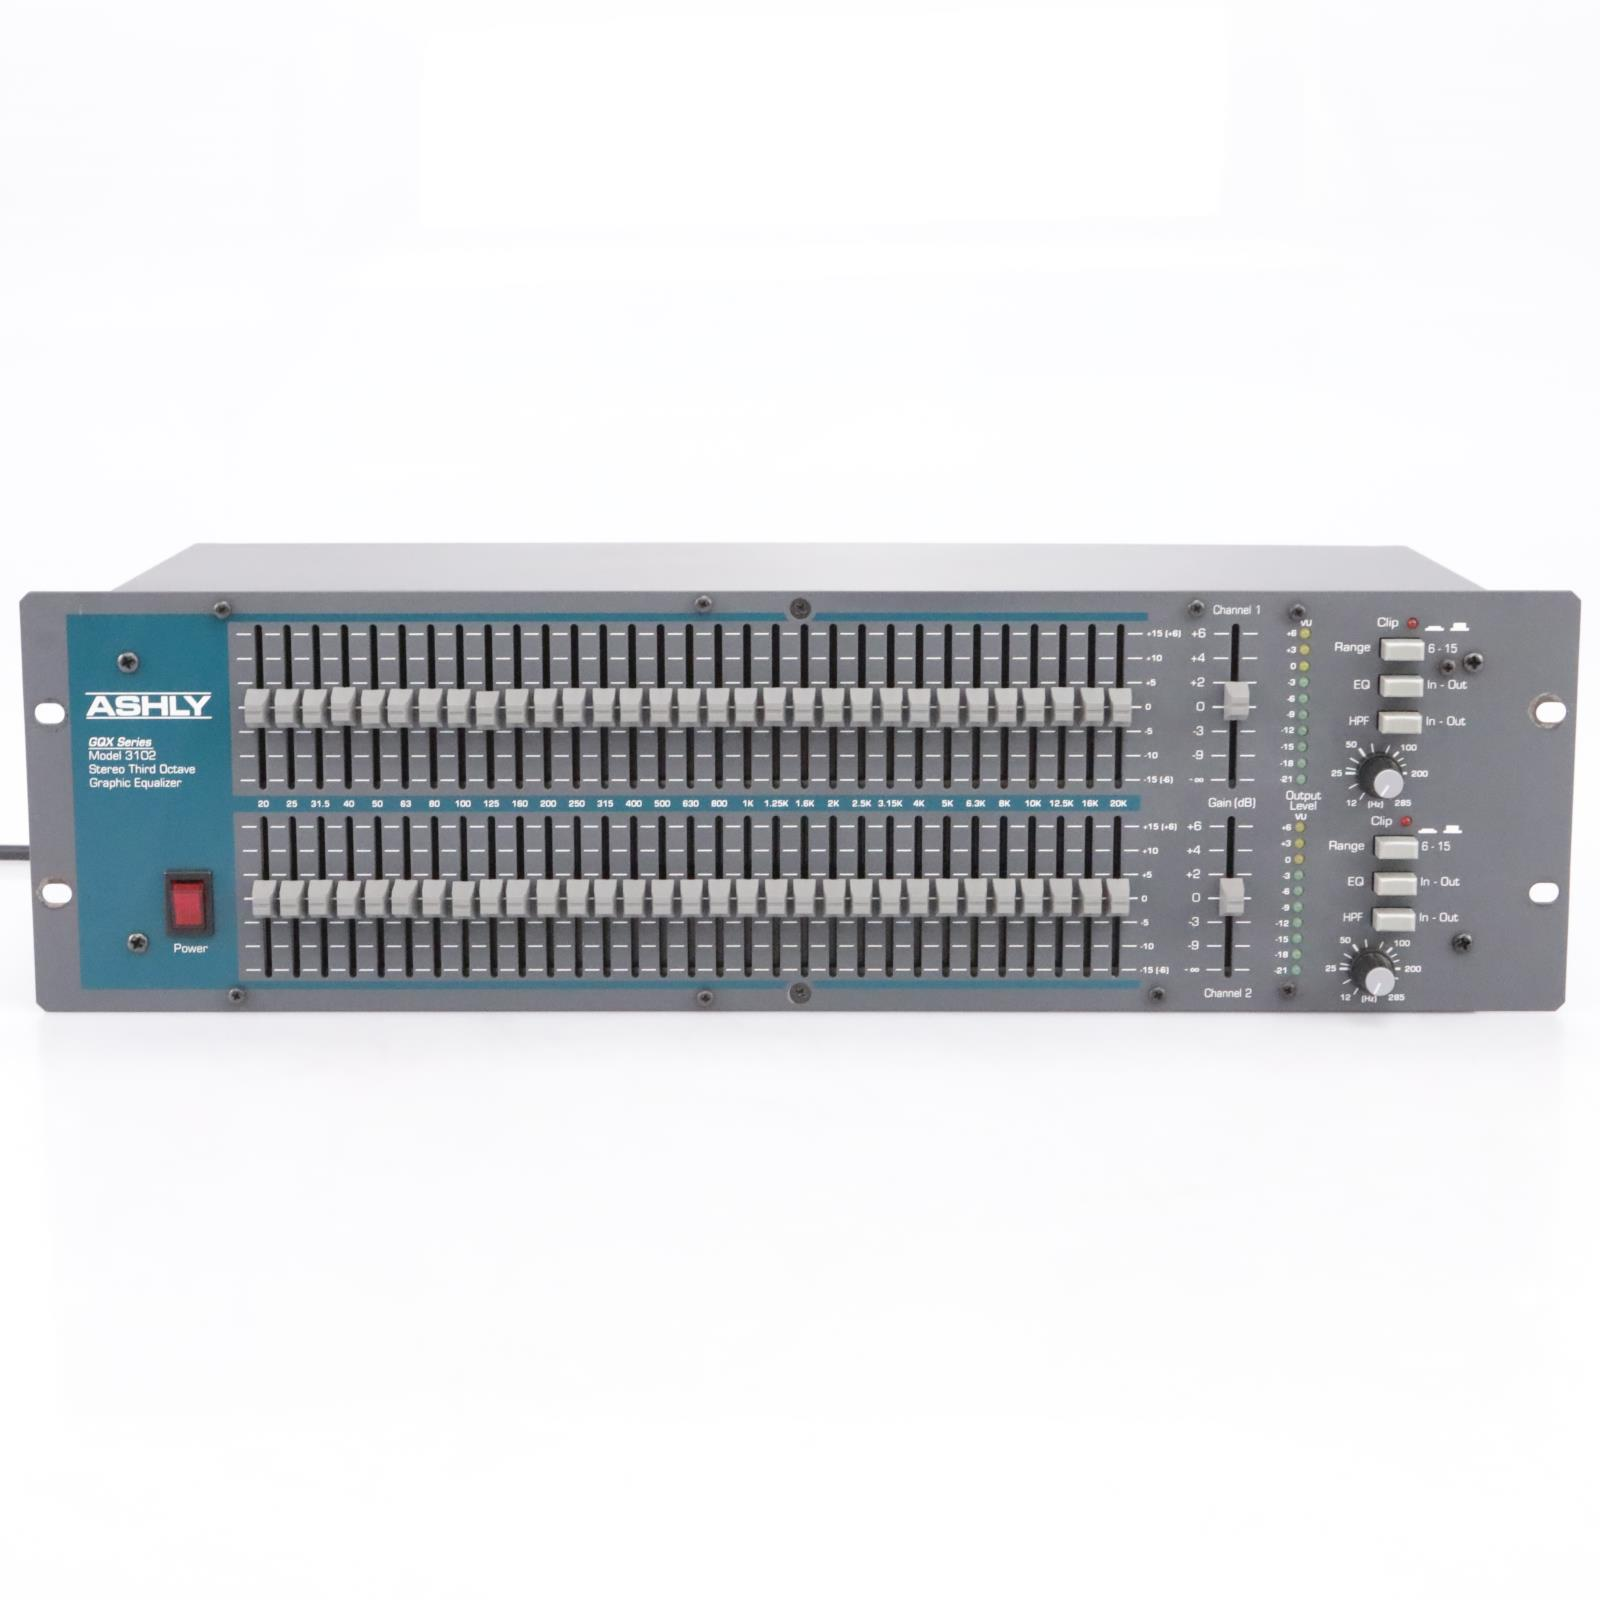 ASHLY Audio GQX-3102 Dual-Channel 31-Band Graphic Equalizer #43745